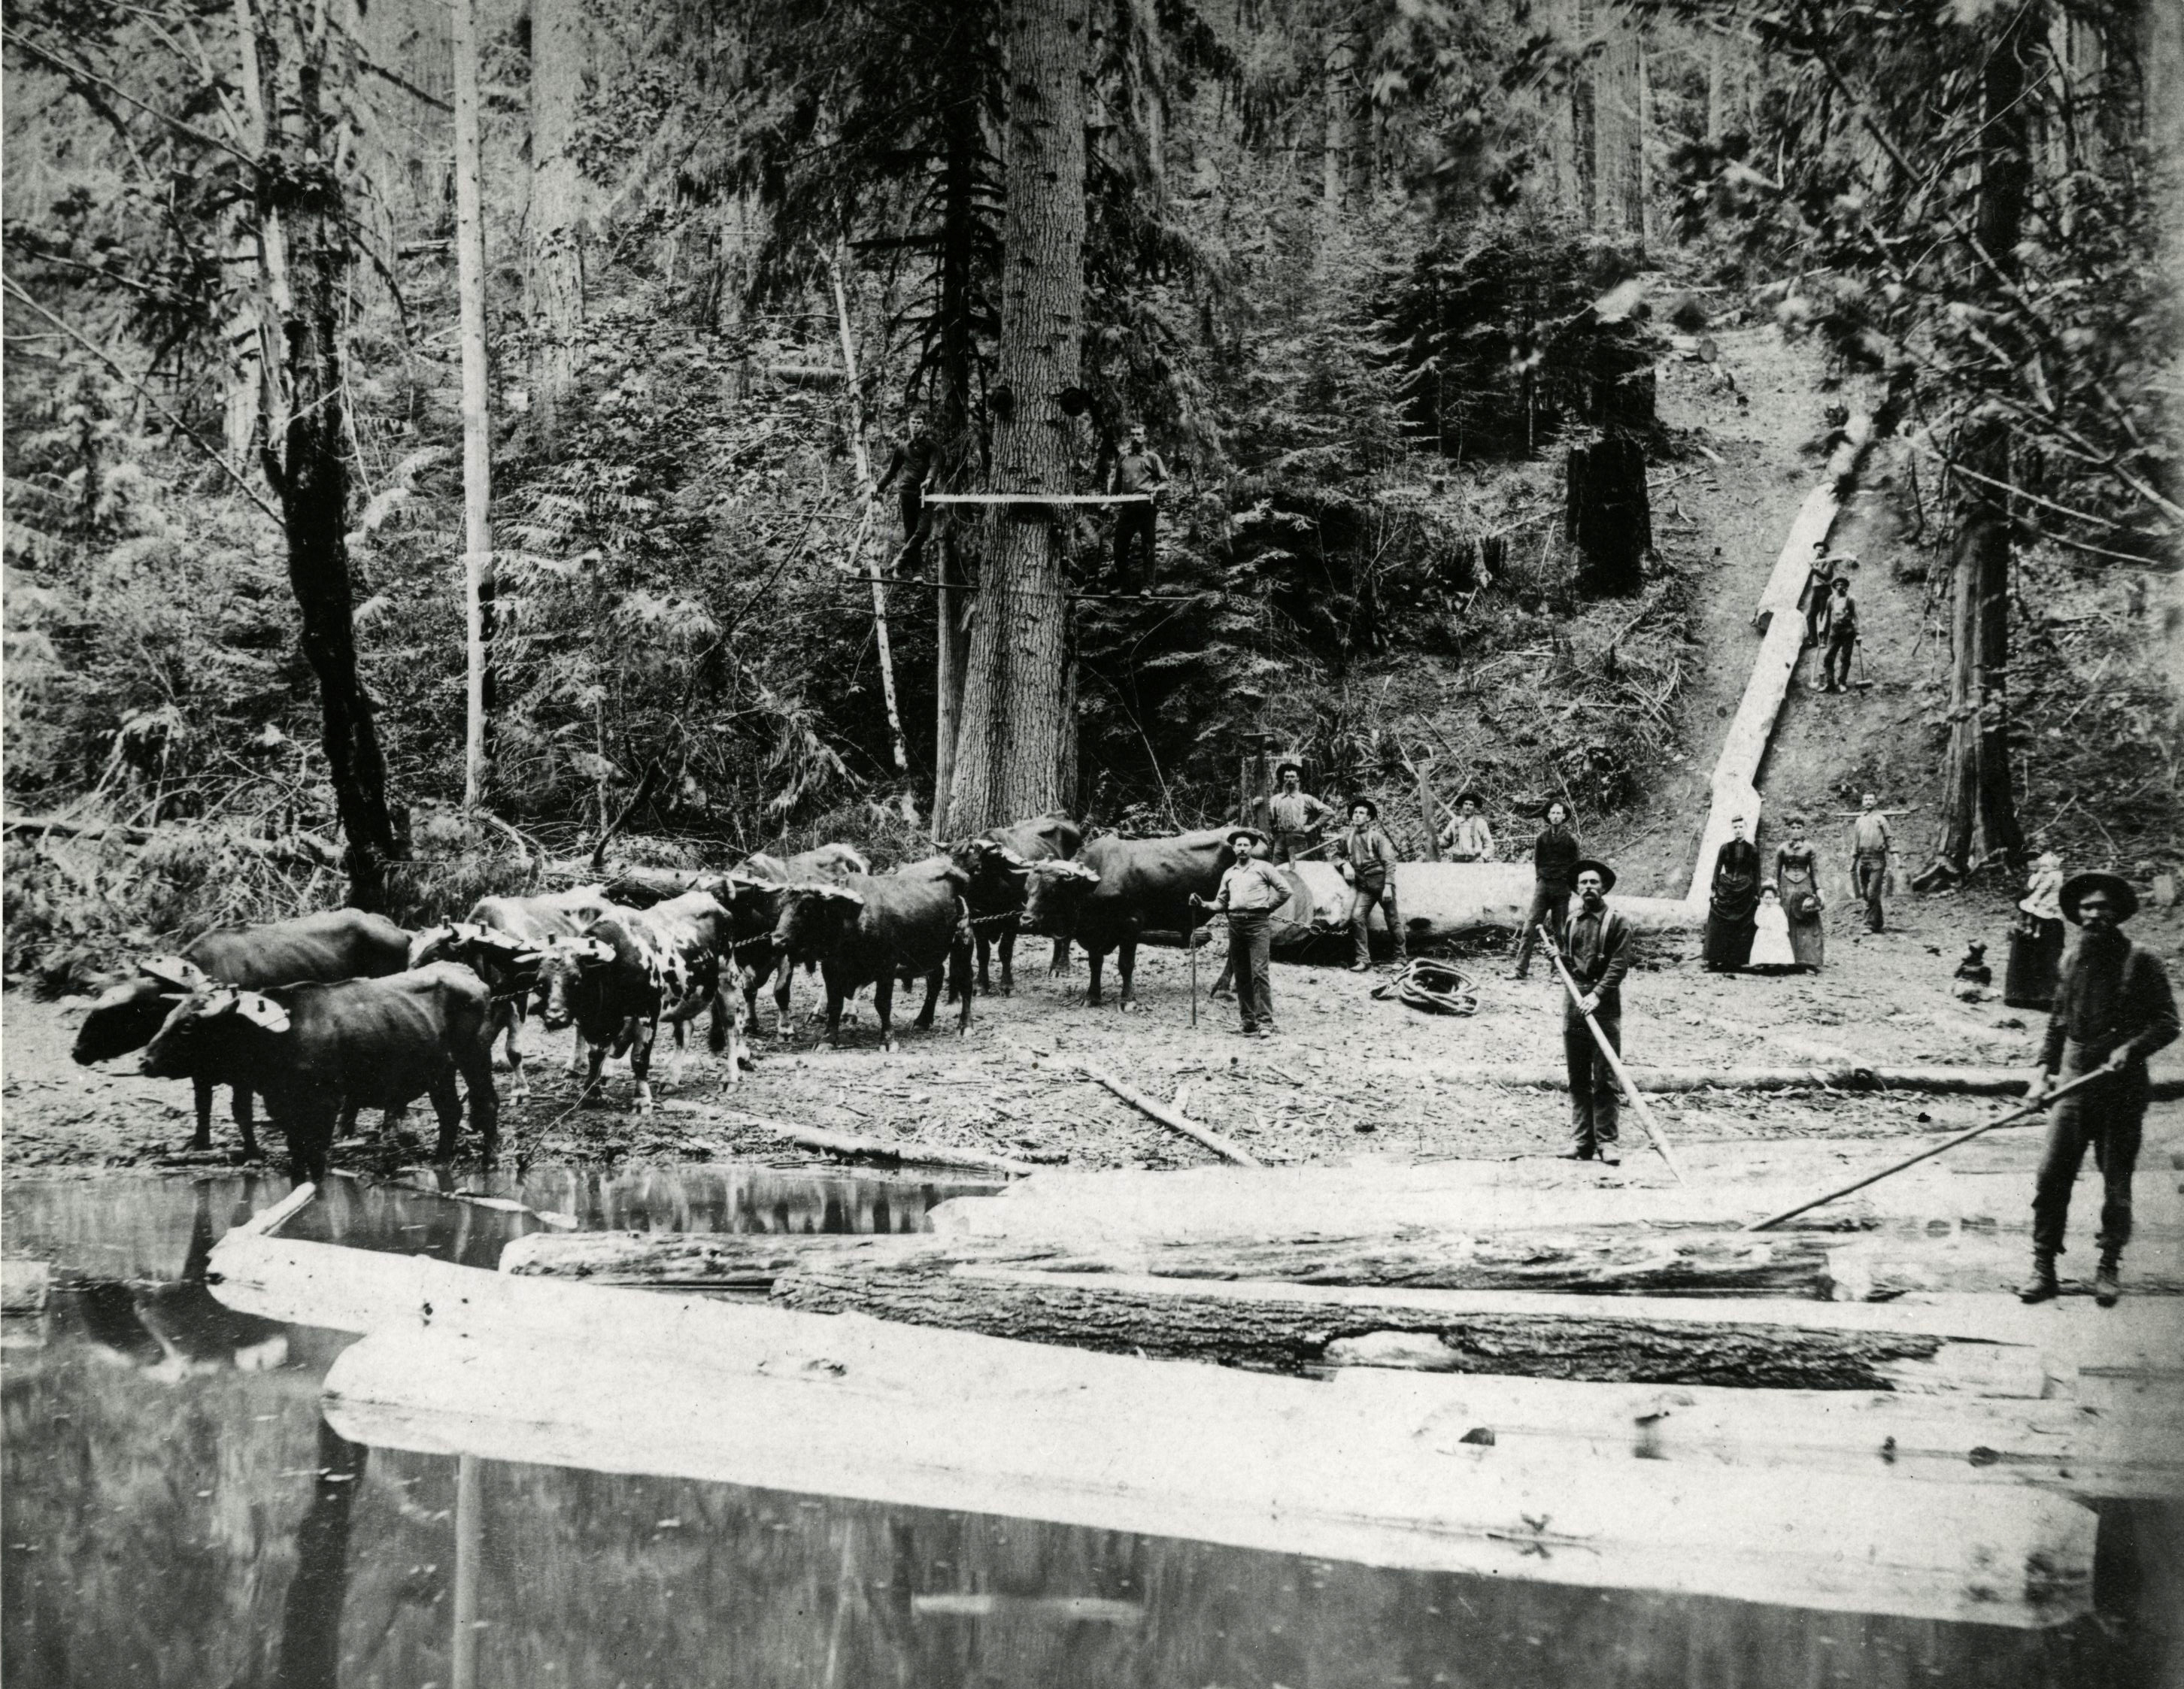 Logging on Big Sandy, Leona, Oregon, 1889